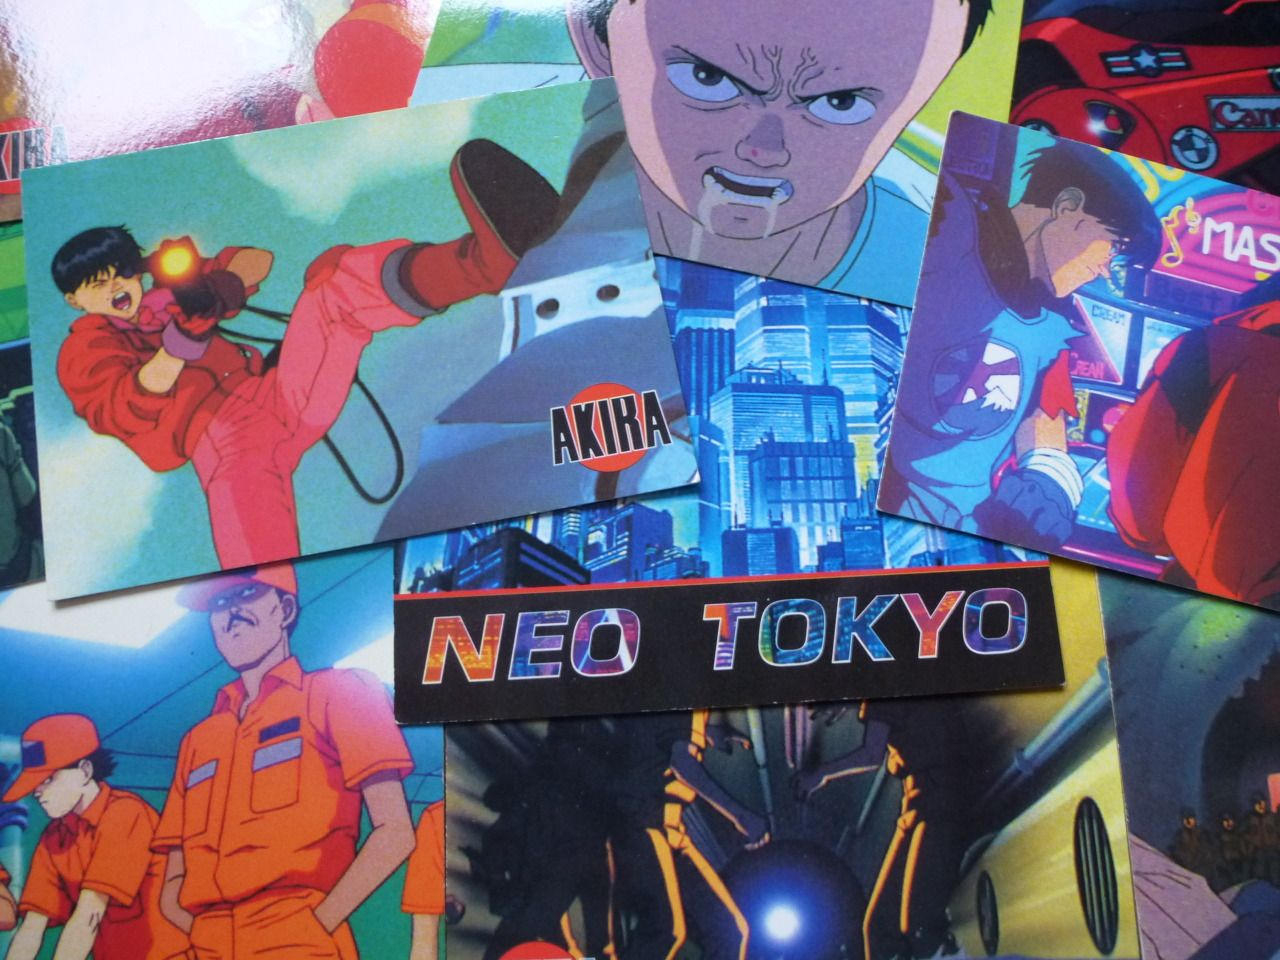 I Won T Be On The Receiving End In 2020 Akira Neo Tokyo Roleplay